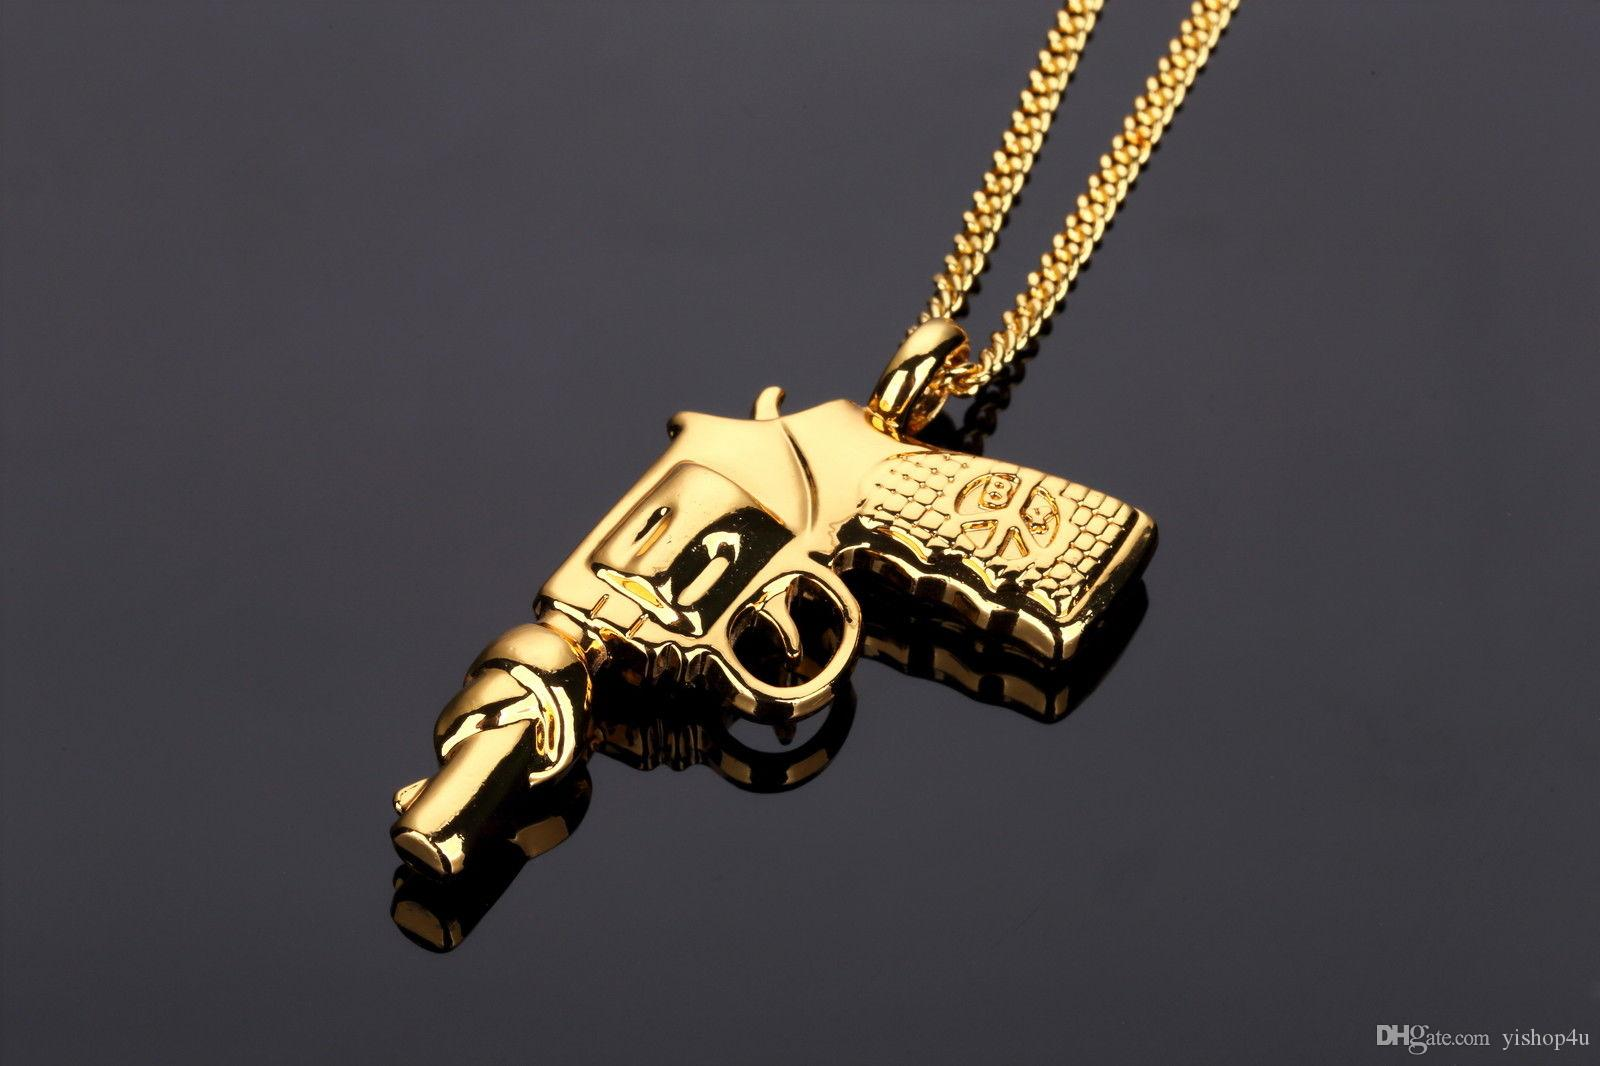 10mm 14k Gold Cz G Link Chain Hip Hop Jewelry King Ice >> Mens Hip Hop Necklace 18k Gold Plated Pistol Gun Iced Out Pendant Cuban Chain 24 Pendant Necklace